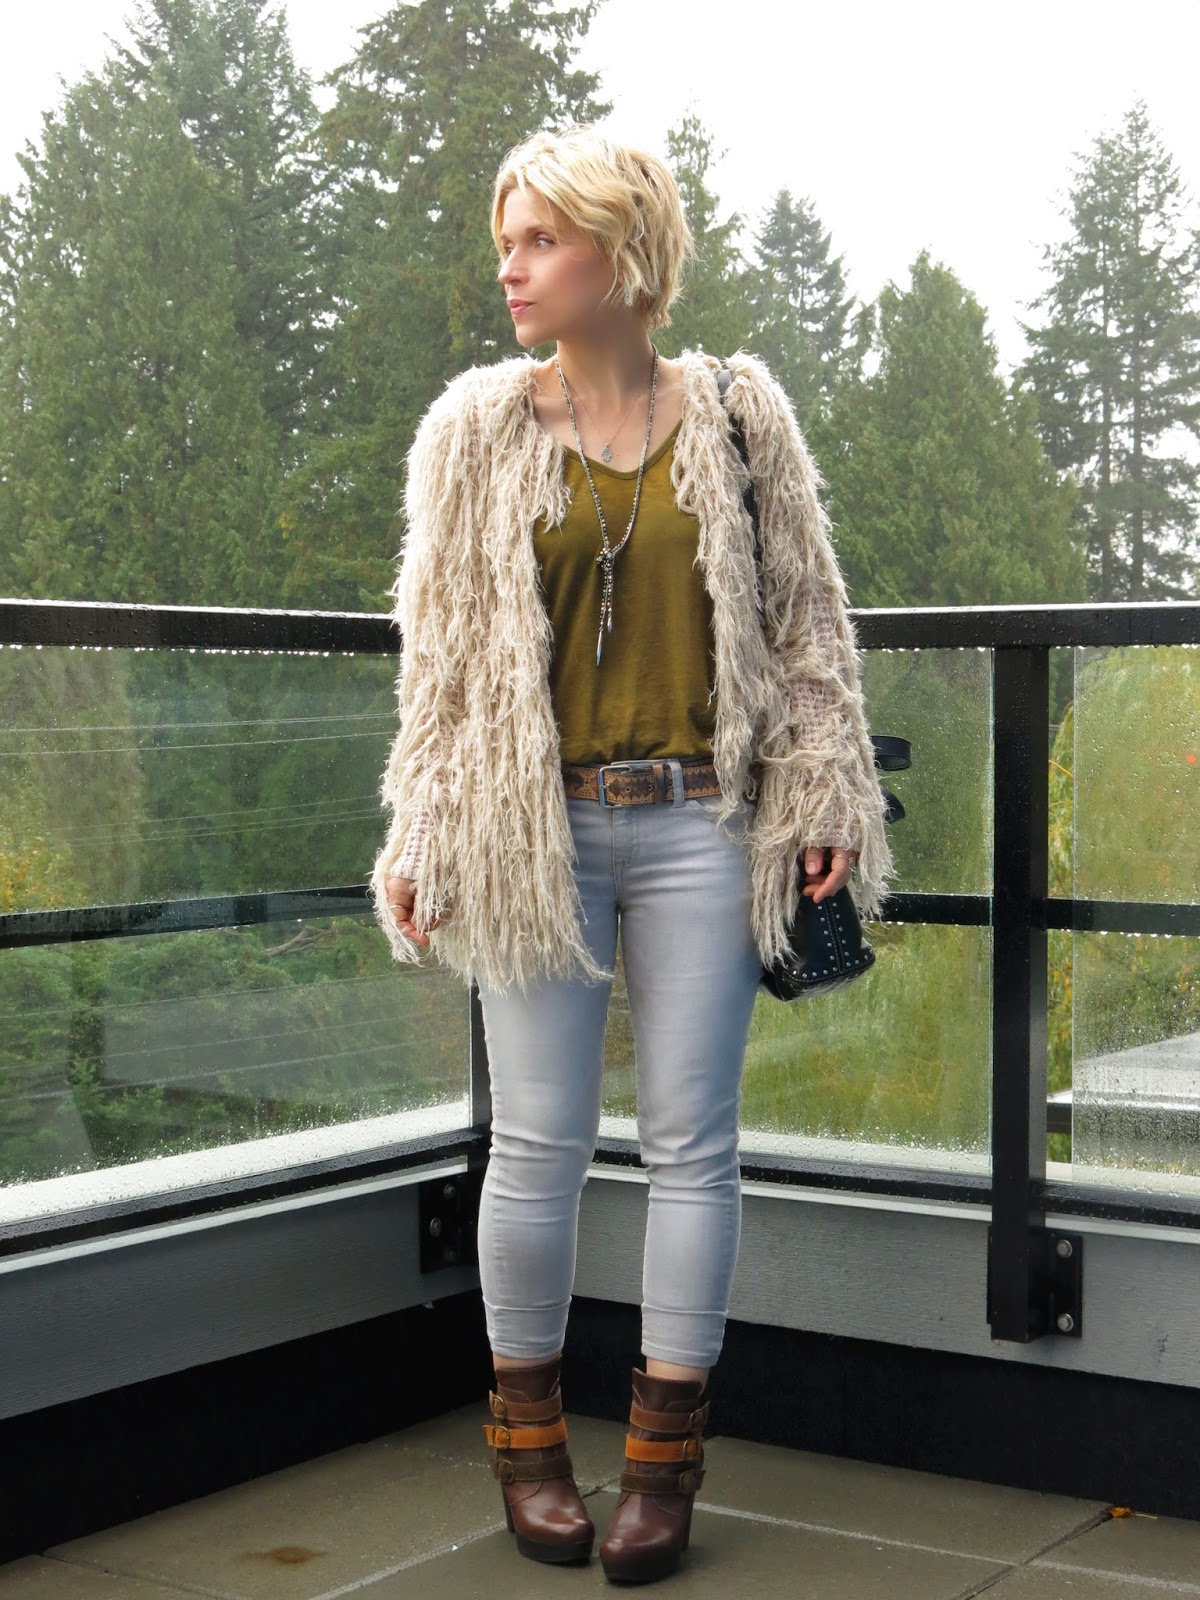 styling a Free People fringy cardigan with skinny jeans and strap-embellished ankle boots